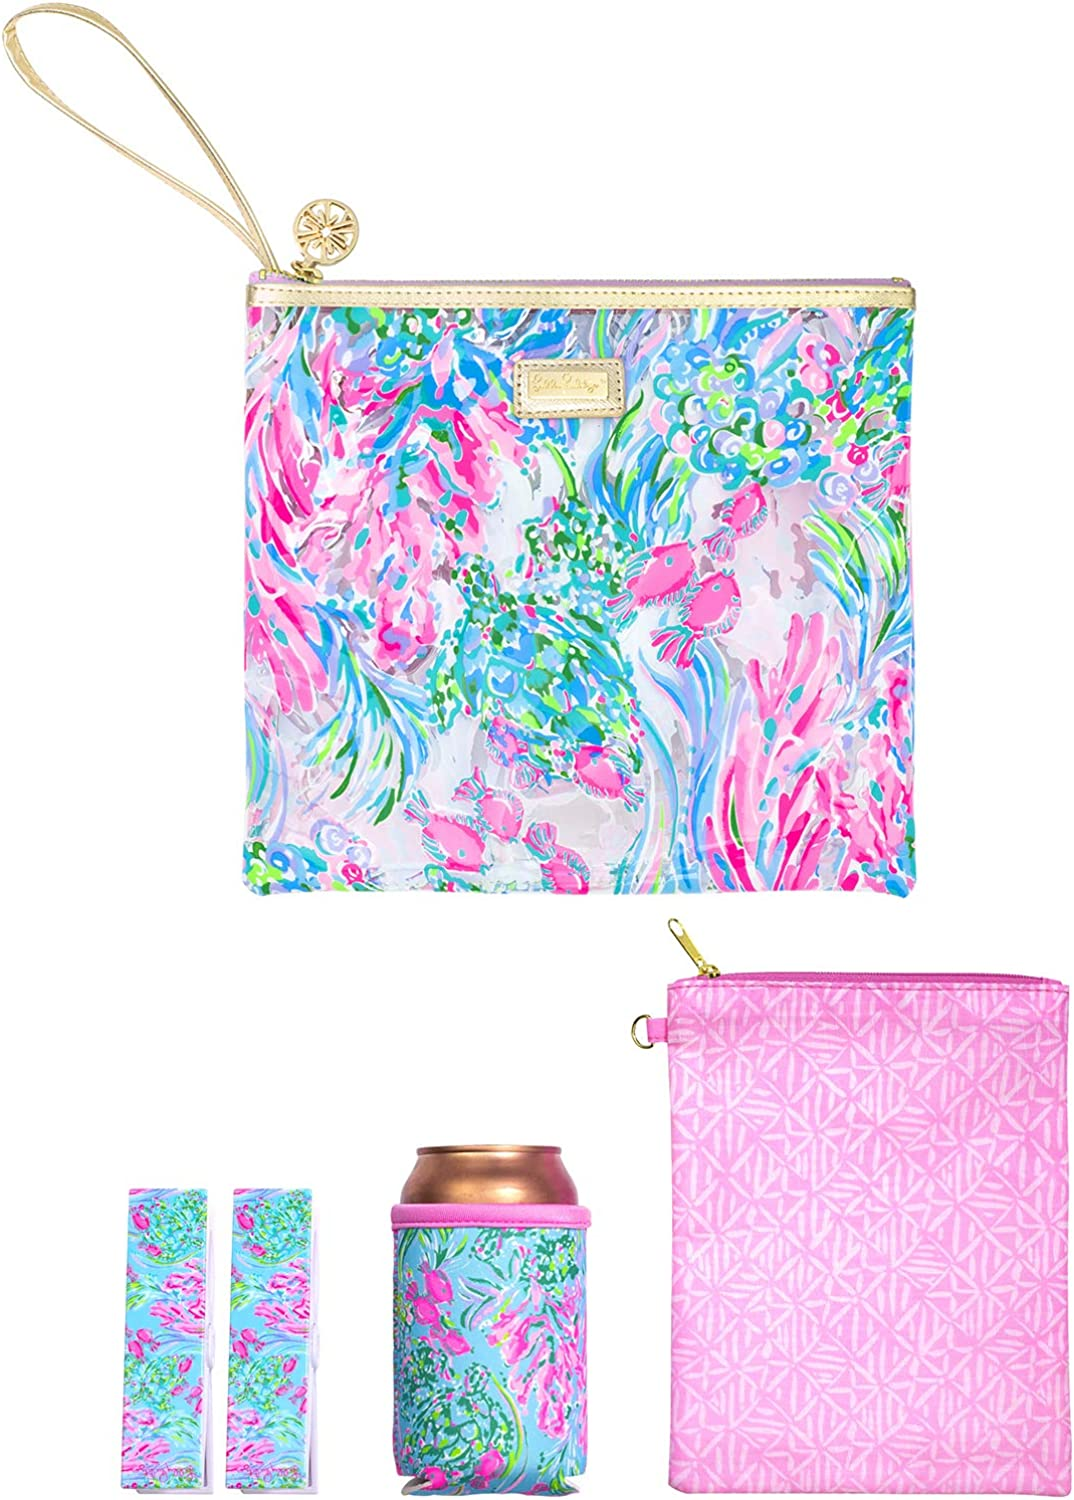 Lilly Pulitzer Water Resistant Vinyl Beach Day Pouch, Zipper Bag Includes Drink Hugger, Small Pouch, and Towel Clips